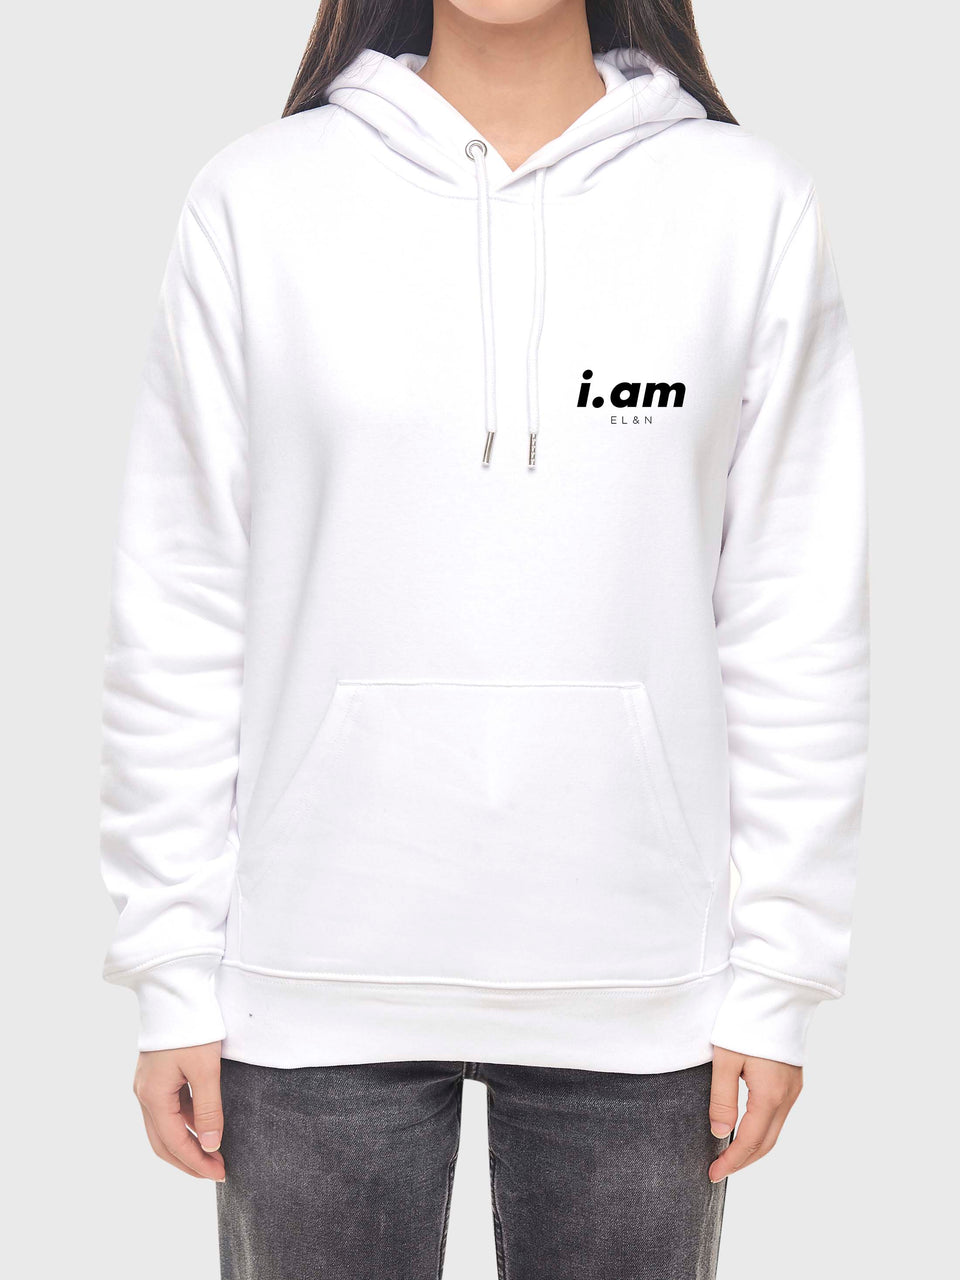 Not a copy - White/Grey - Unisex pull over hoodie